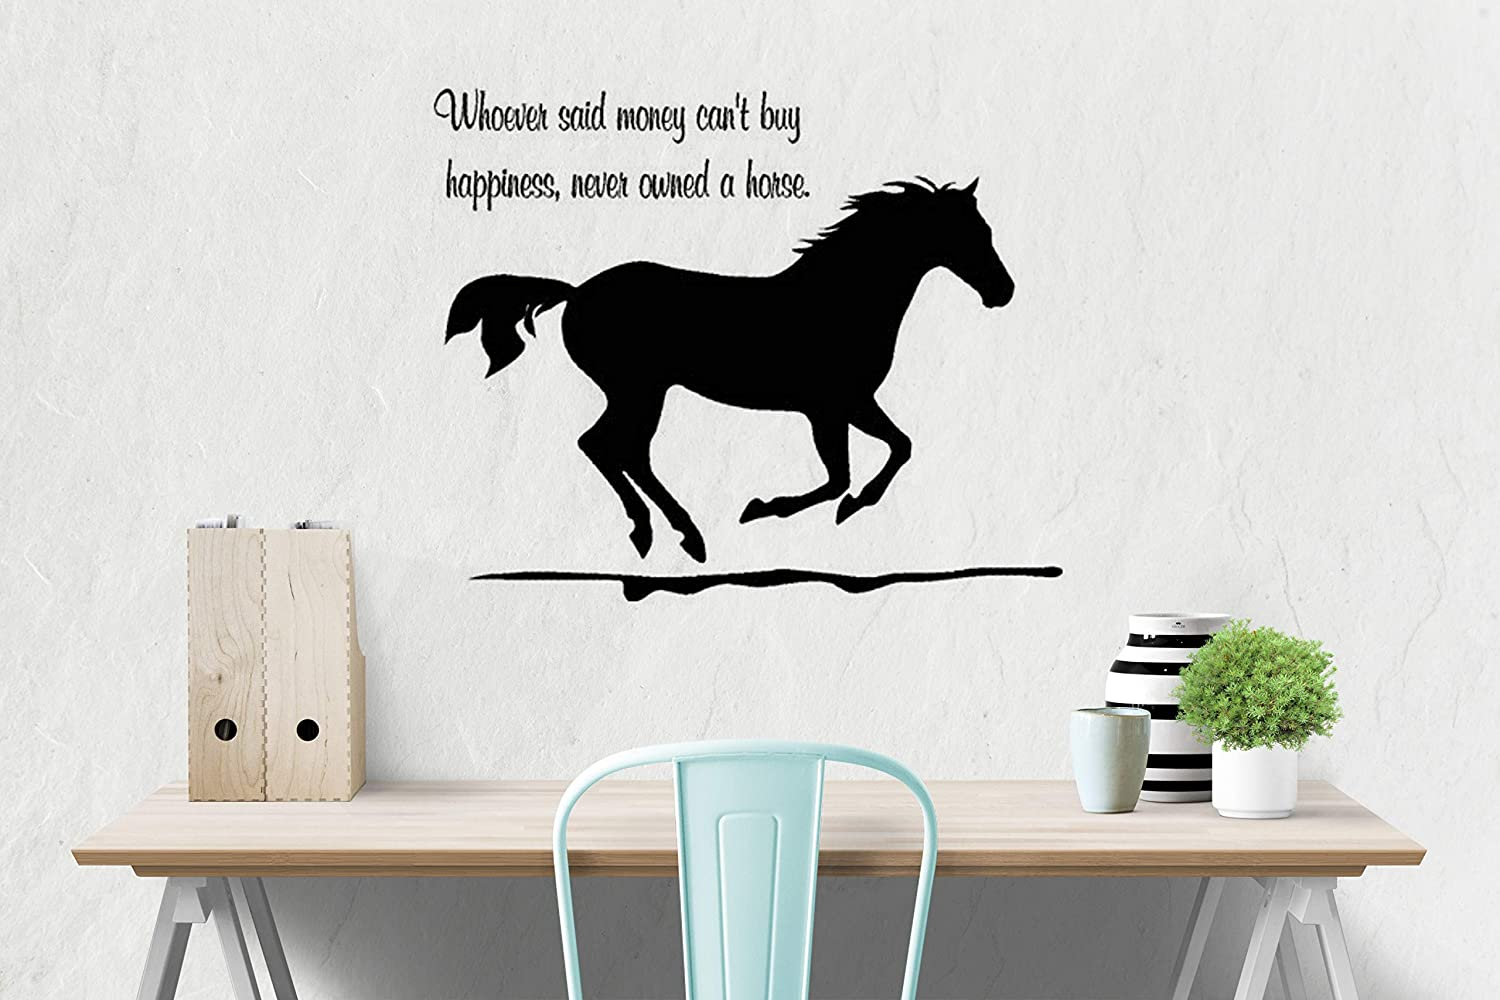 Horse wall decal, girls room quote decal, wall words decal, teen bedroom  decal, dorm room decor, 23 X 33 inches